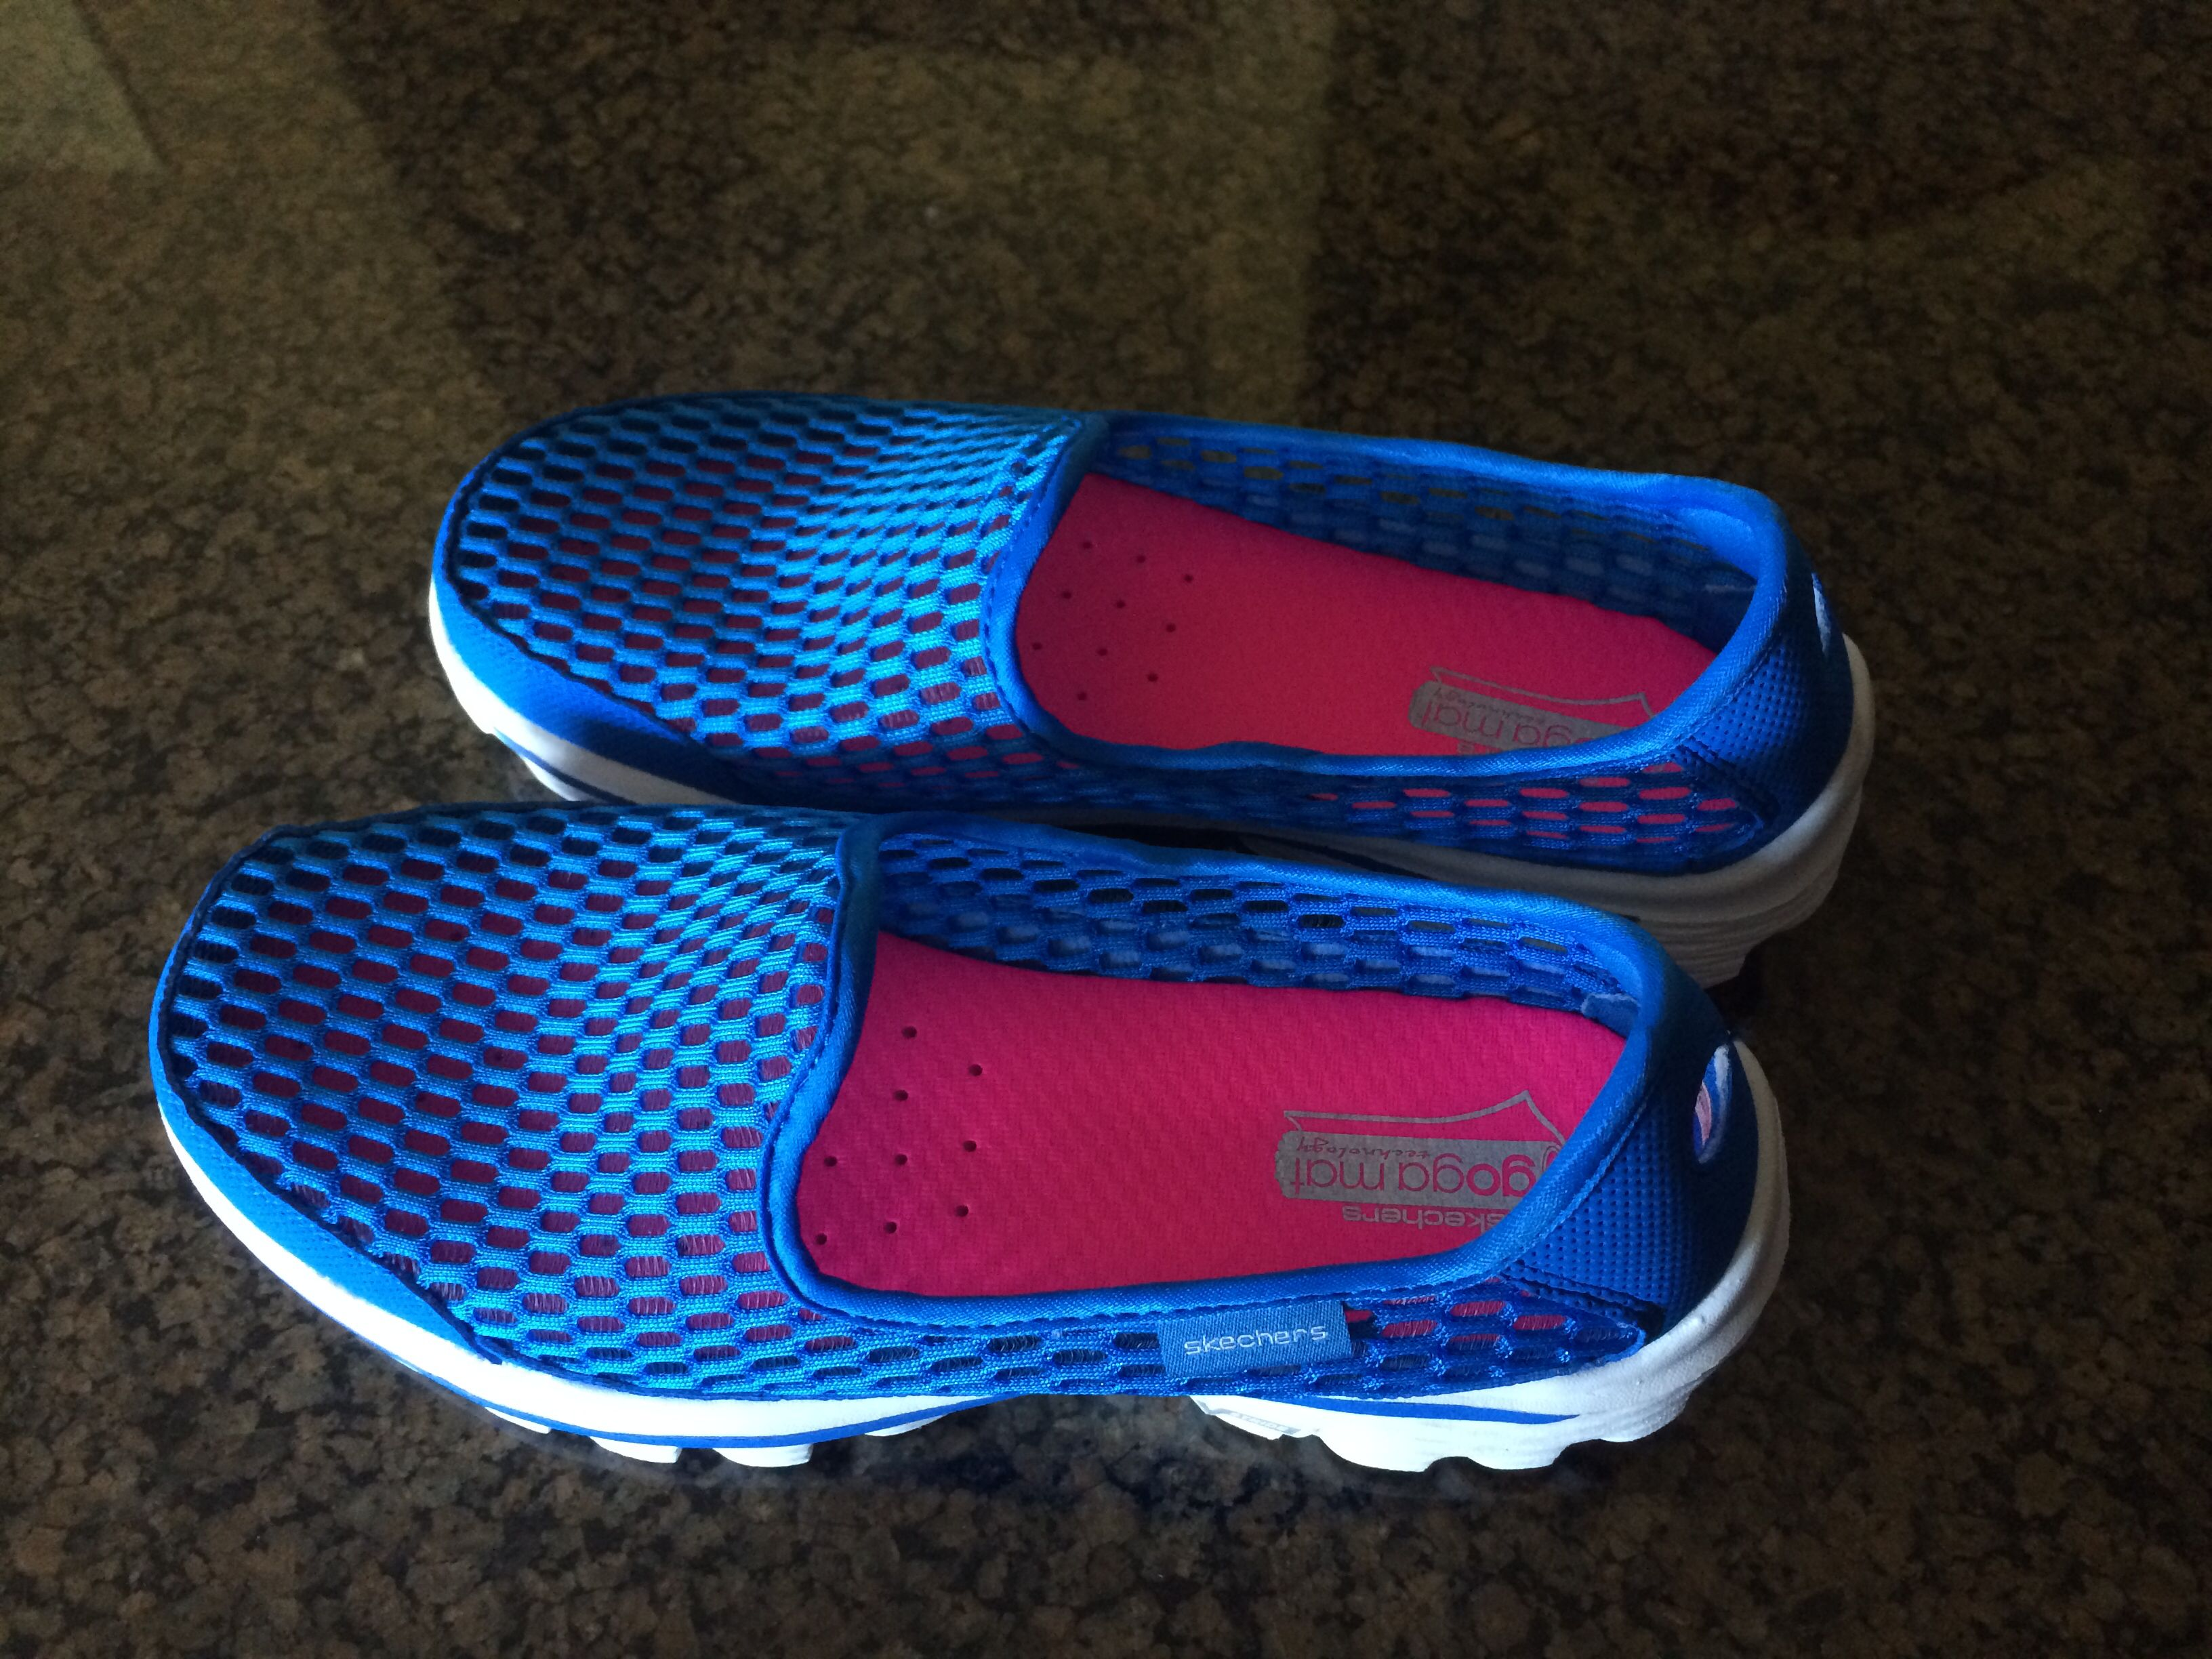 New Summer Shoes Sketchers Go2walk With Gogamat